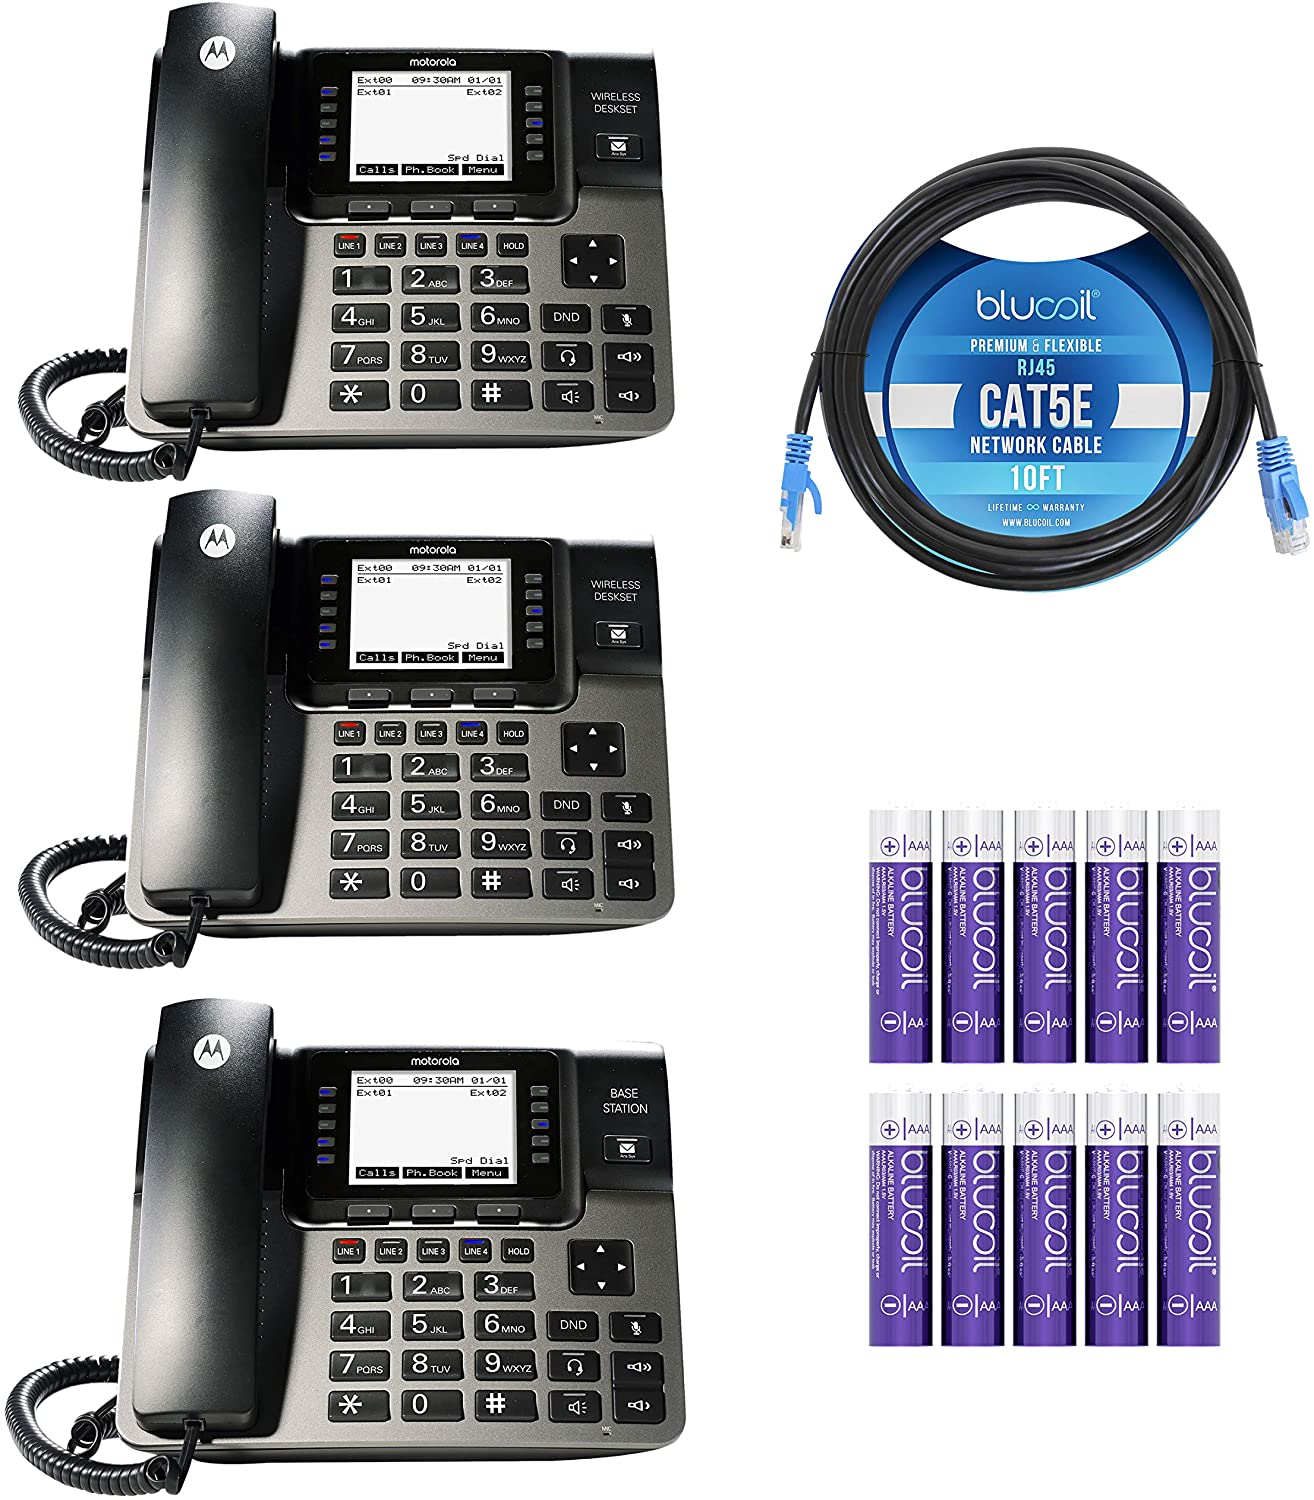 Motorola ML1002D (ML1000 x1, ML1100 x2) DECT 6.0 Expandable 4-Line Business Phone System with Digital Receptionist and Answering System Bundle with Blucoil 10-FT Cat5e Cable, and 10 AAA Batteries